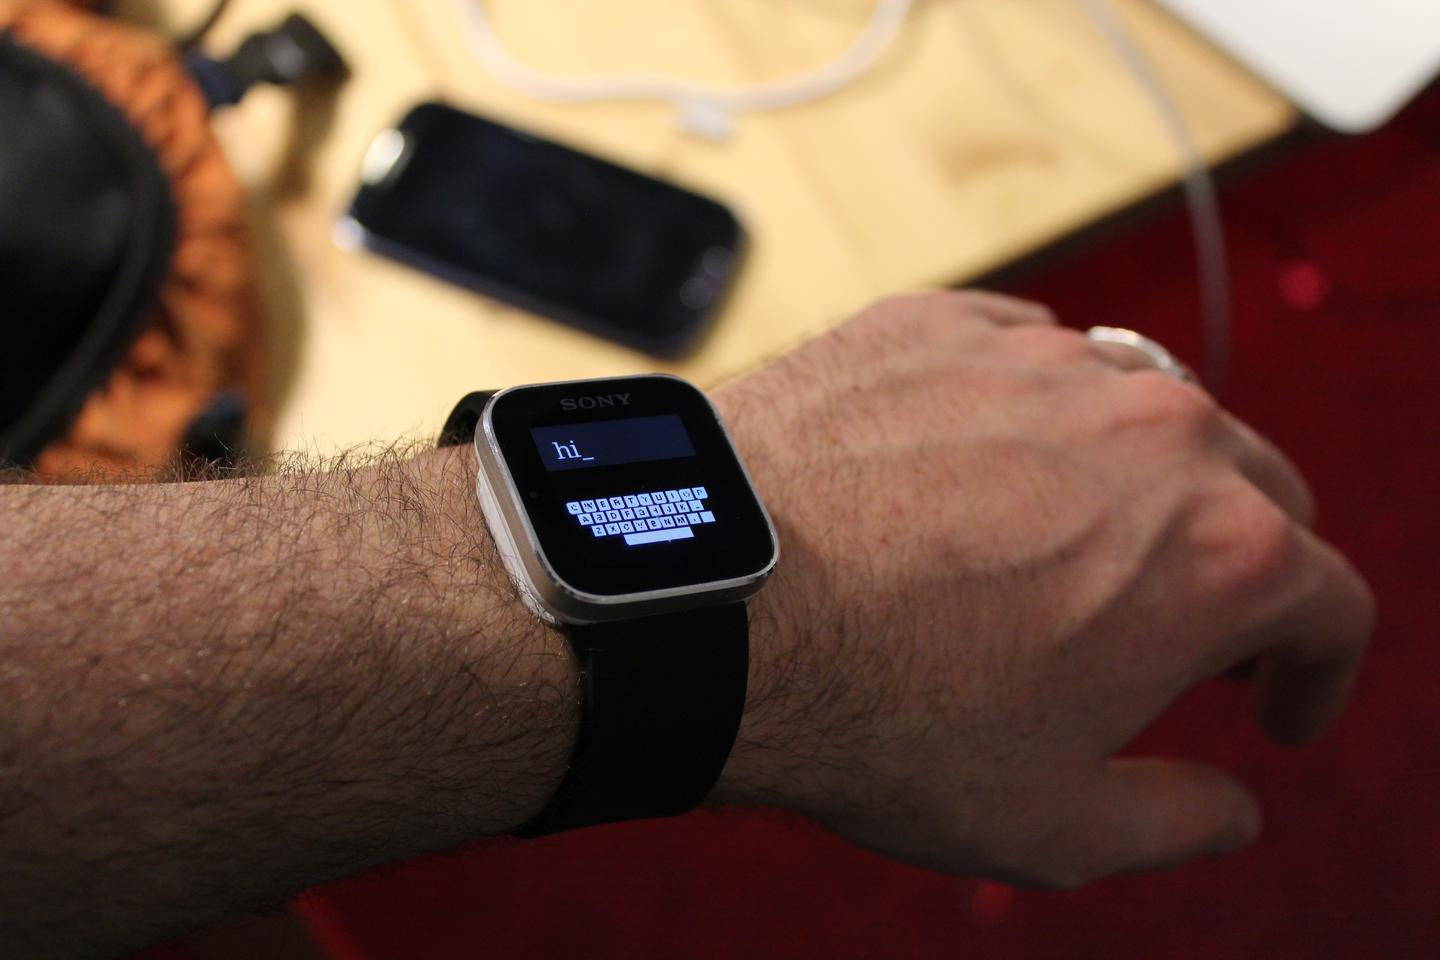 The ZoomBoard system allows smartwatch users to type on their devices' tiny screens